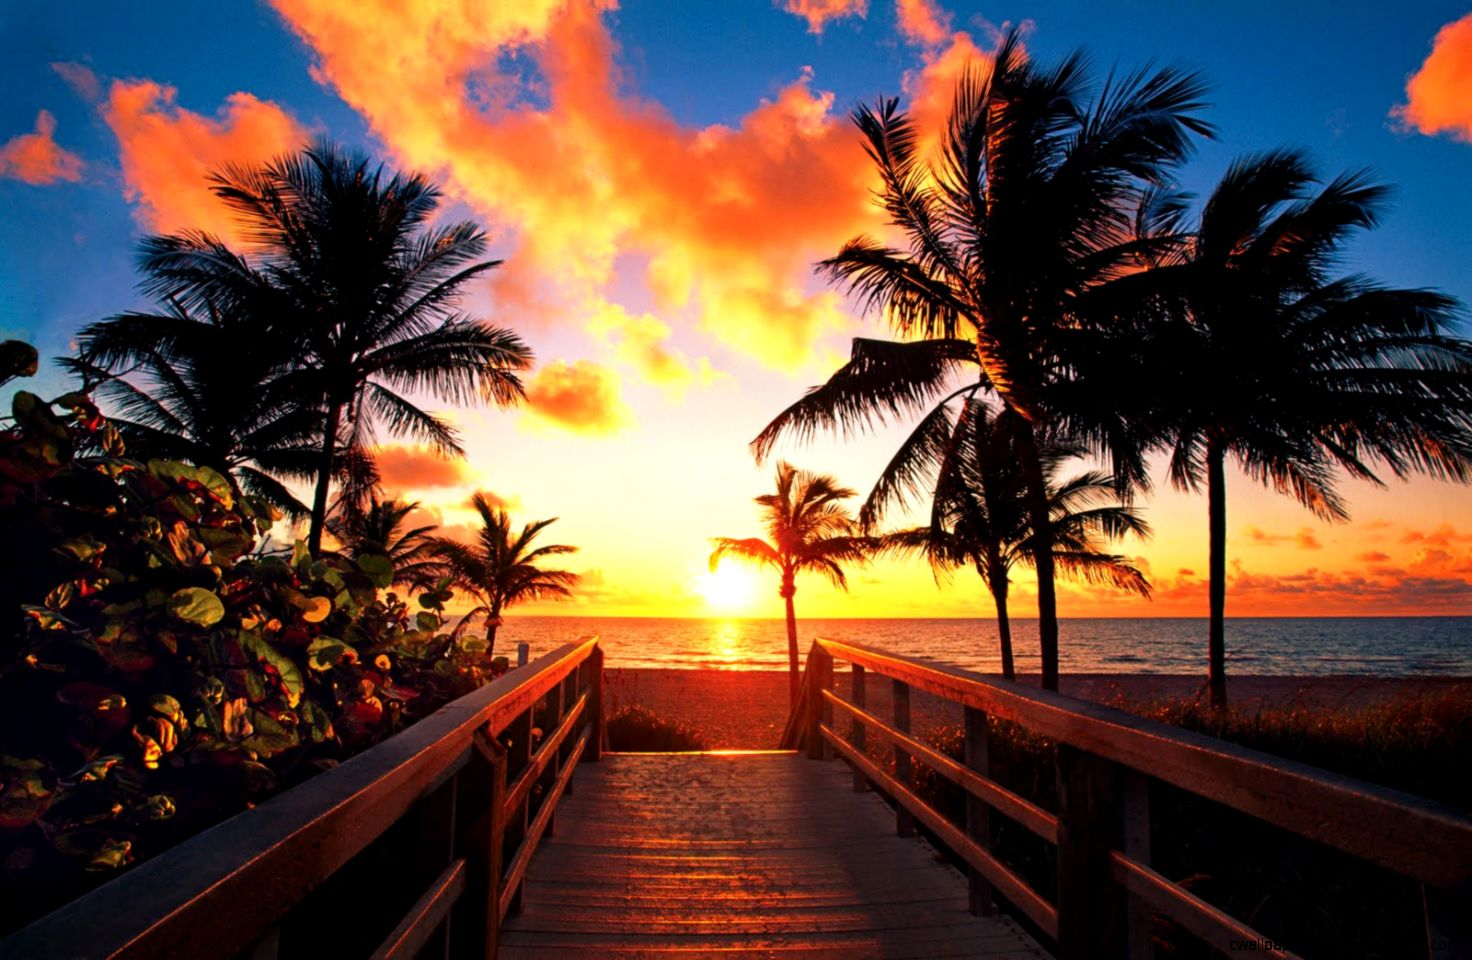 Tropical Sunrise Wallpaper  Vorrei essere qui  Pinterest